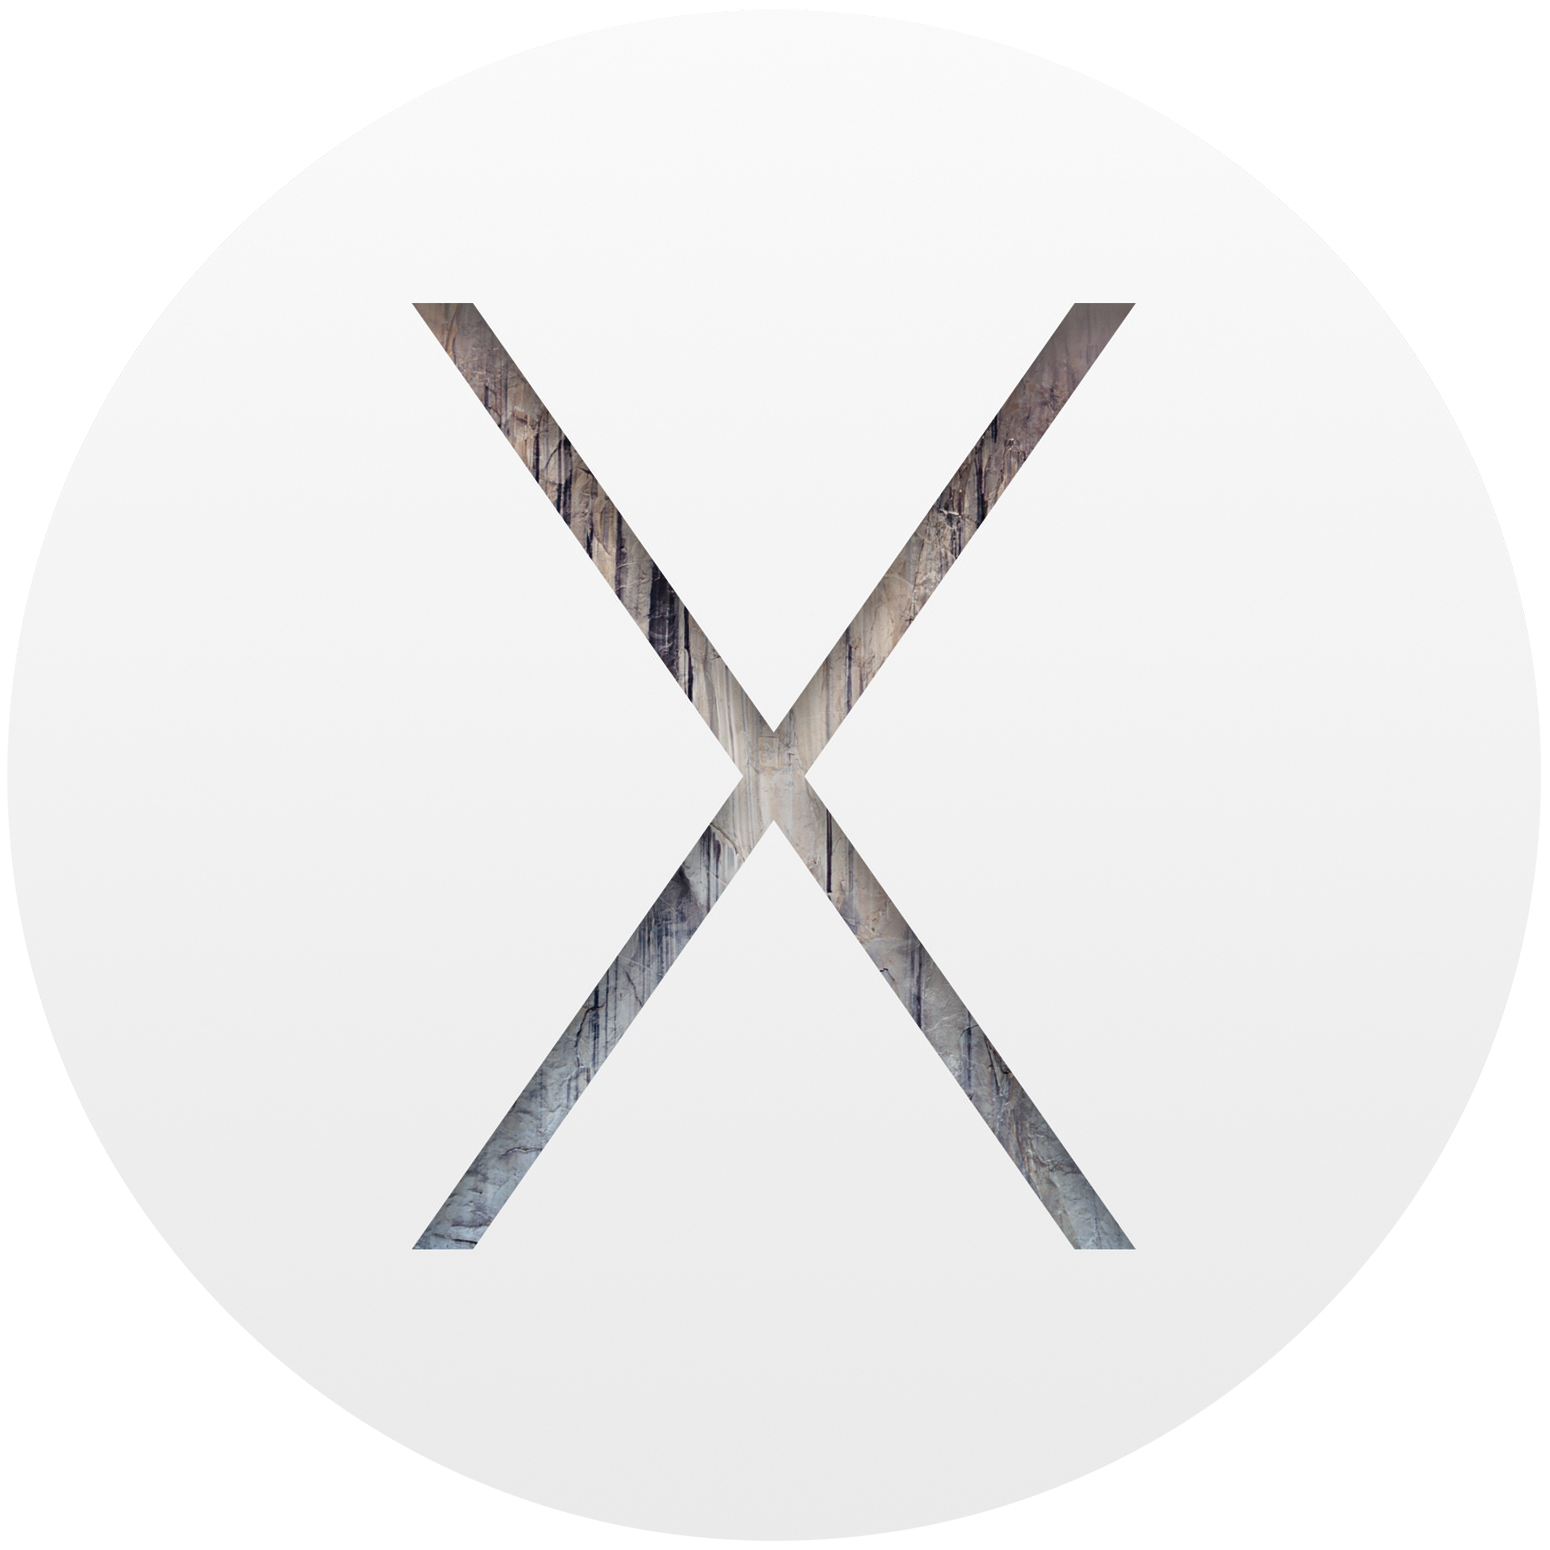 Ícone do OS X Yosemite